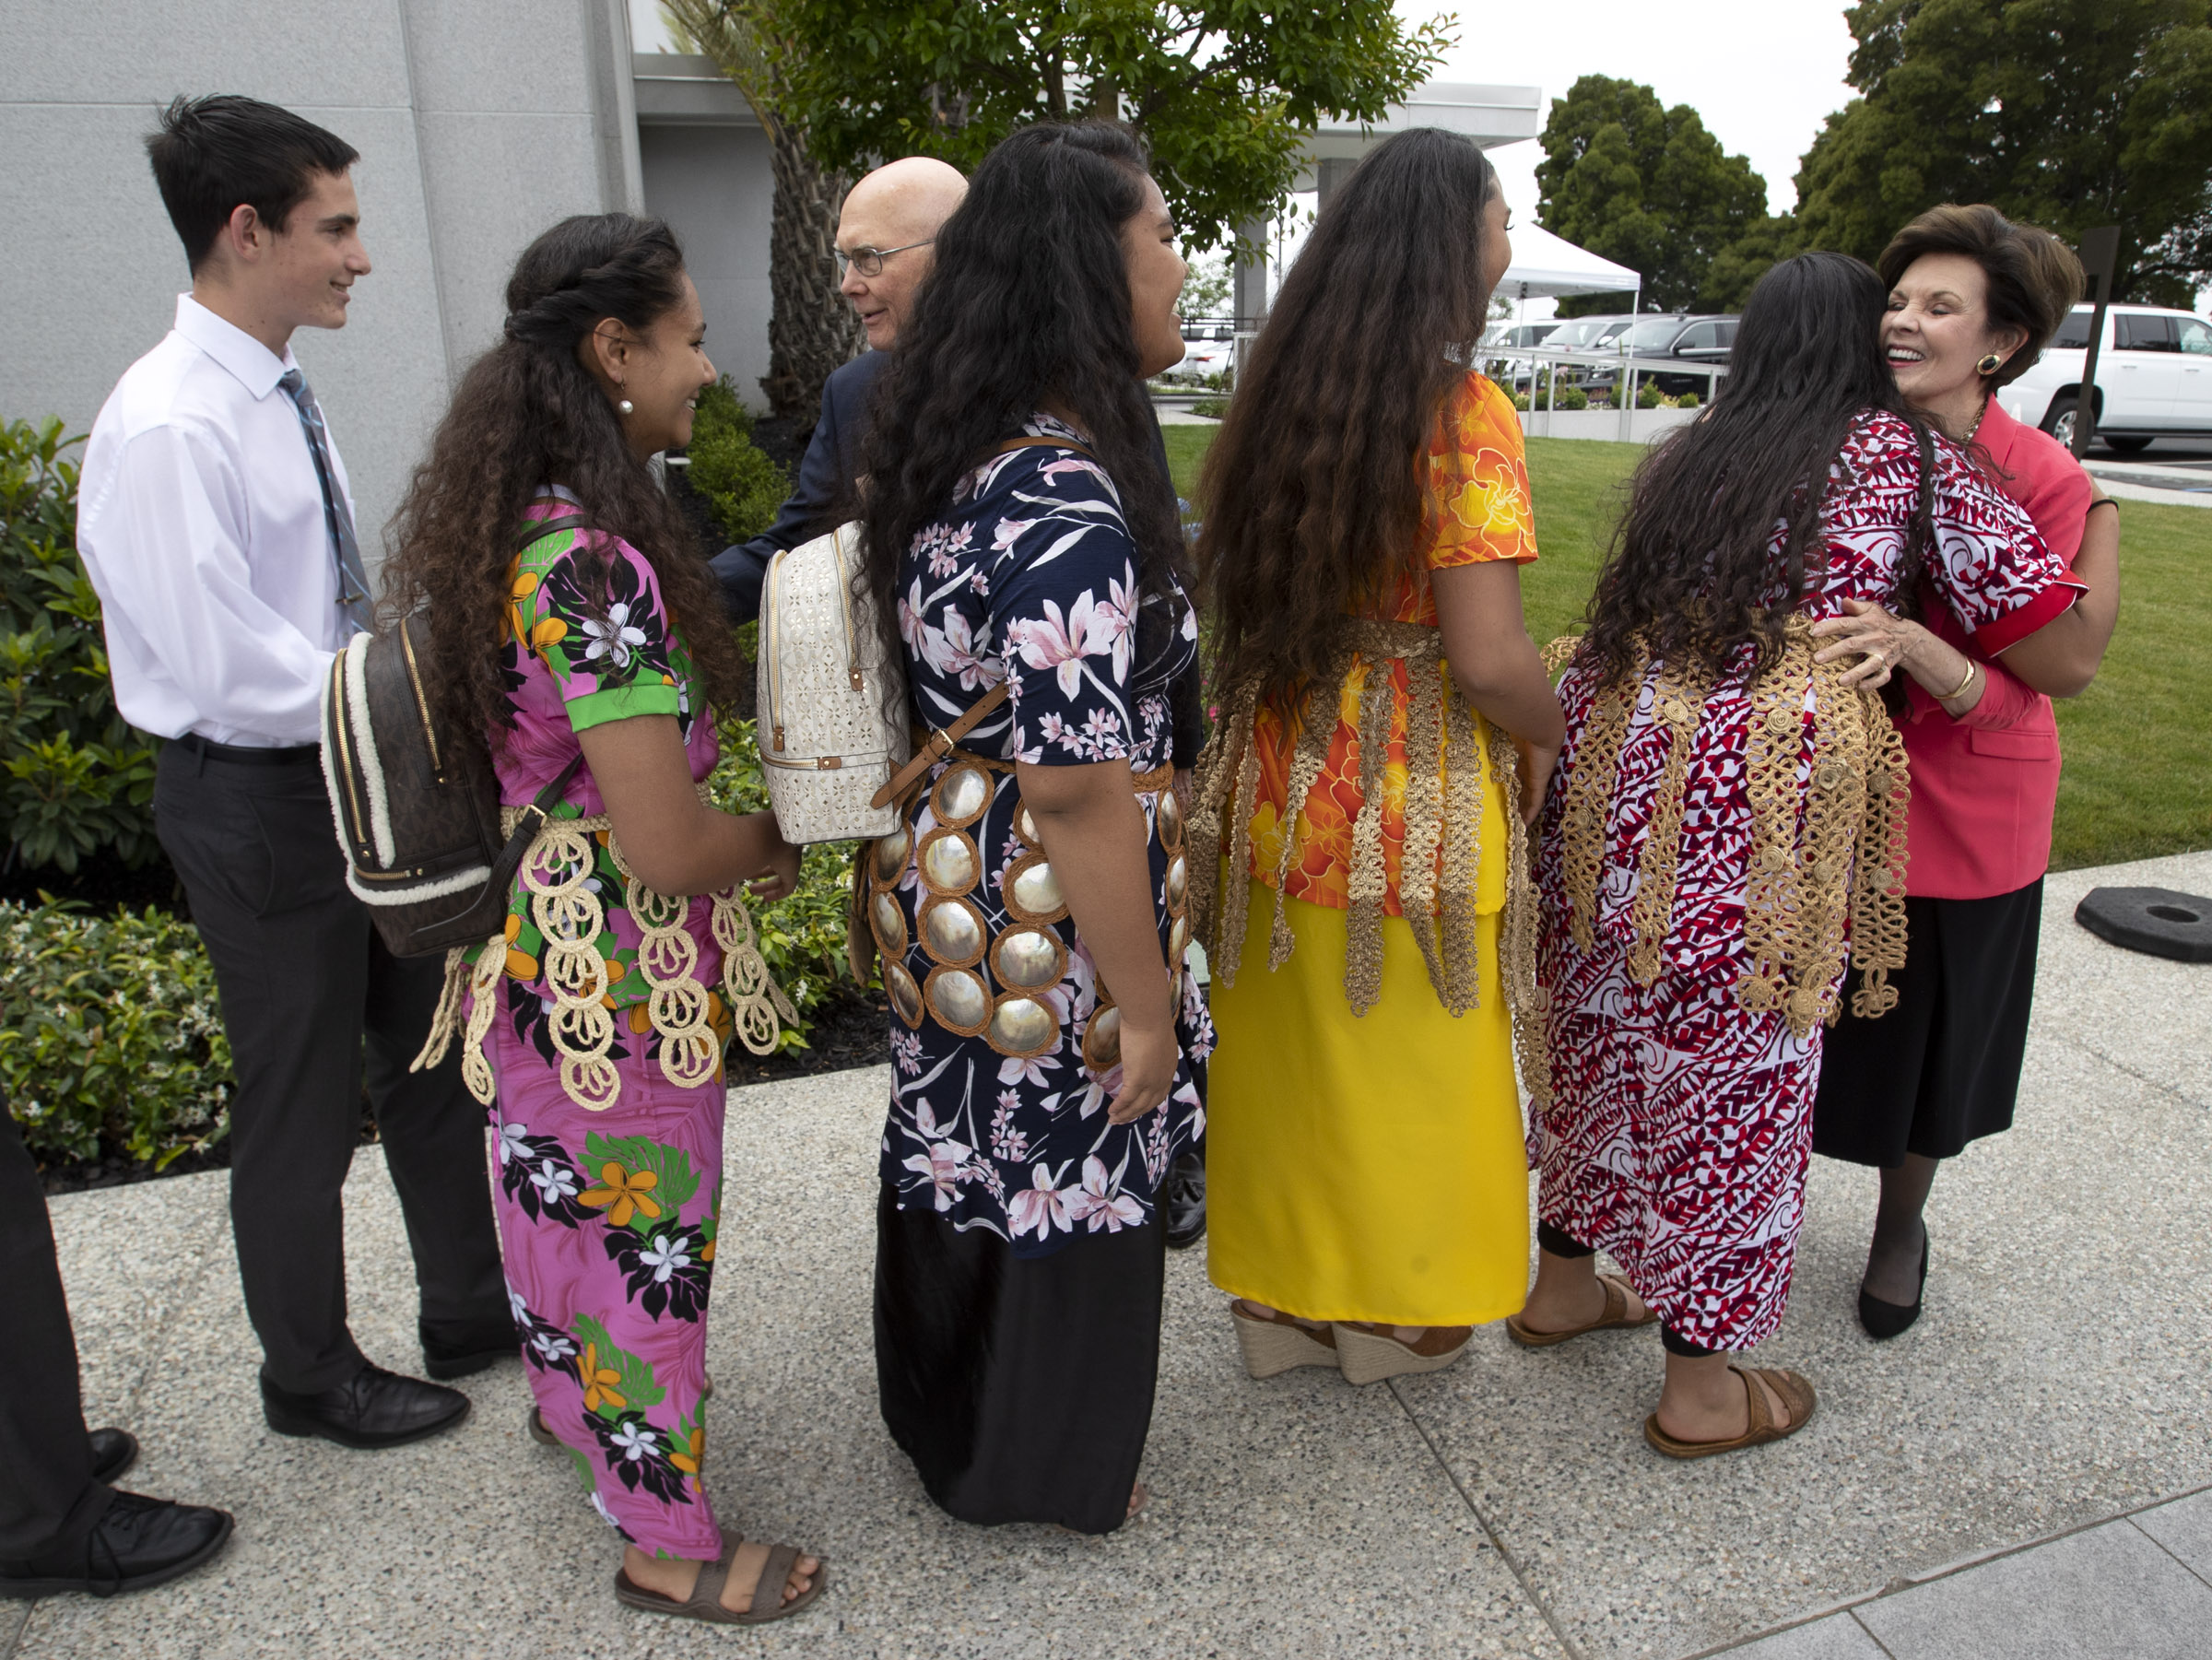 President Dallin H. Oaks, first counselor in the First Presidency of The Church of Jesus Christ of Latter-day Saints, and his wife, Sister Kristen Oaks, greet youth from East Oakland, Calif. prior to a youth devotional at the Interstake Center on the Oakland California Temple grounds on Saturday, June 15, 2019.